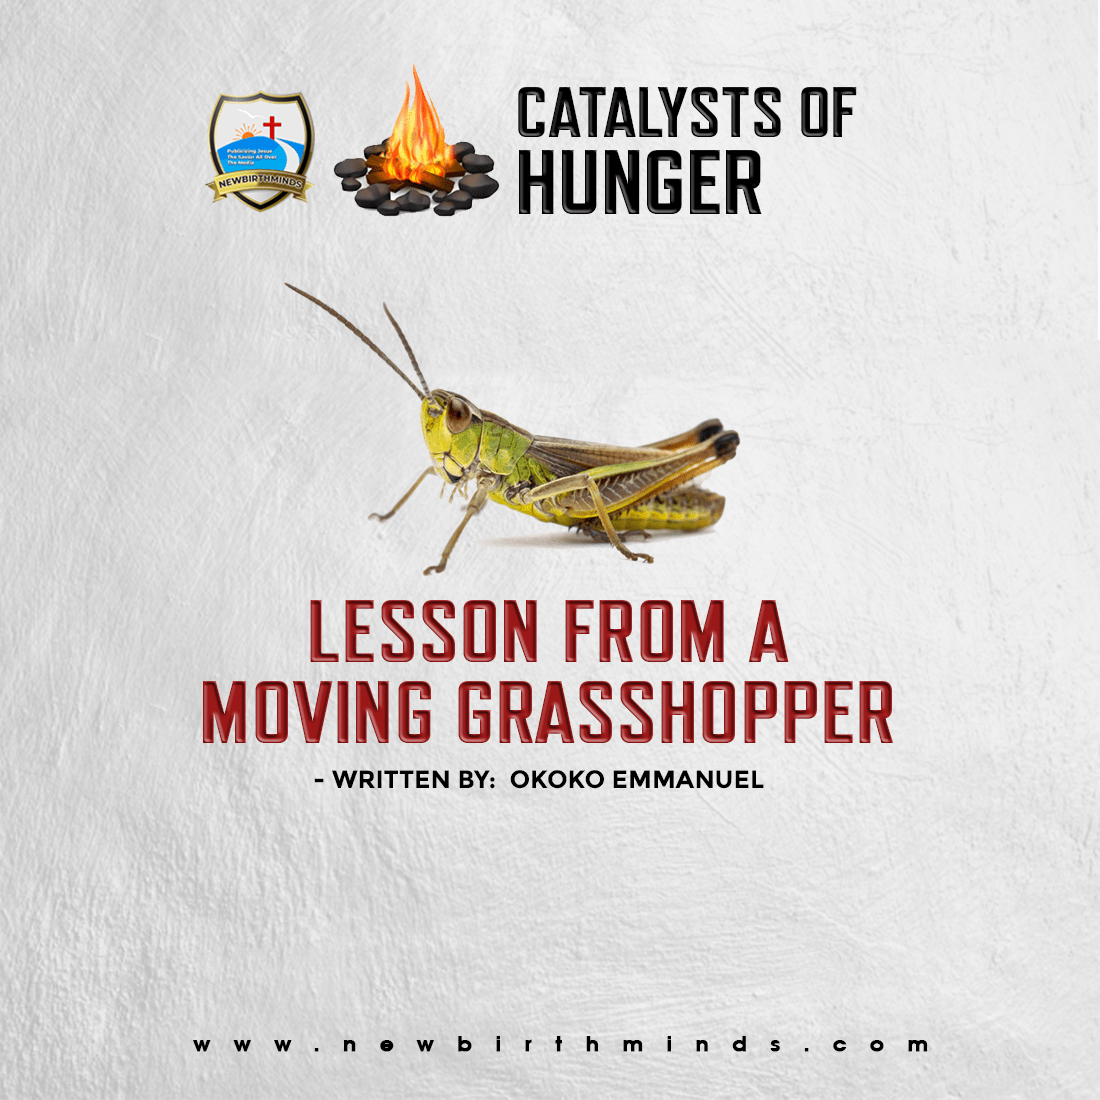 LESSON FROM A MOVING GRASSHOPPER